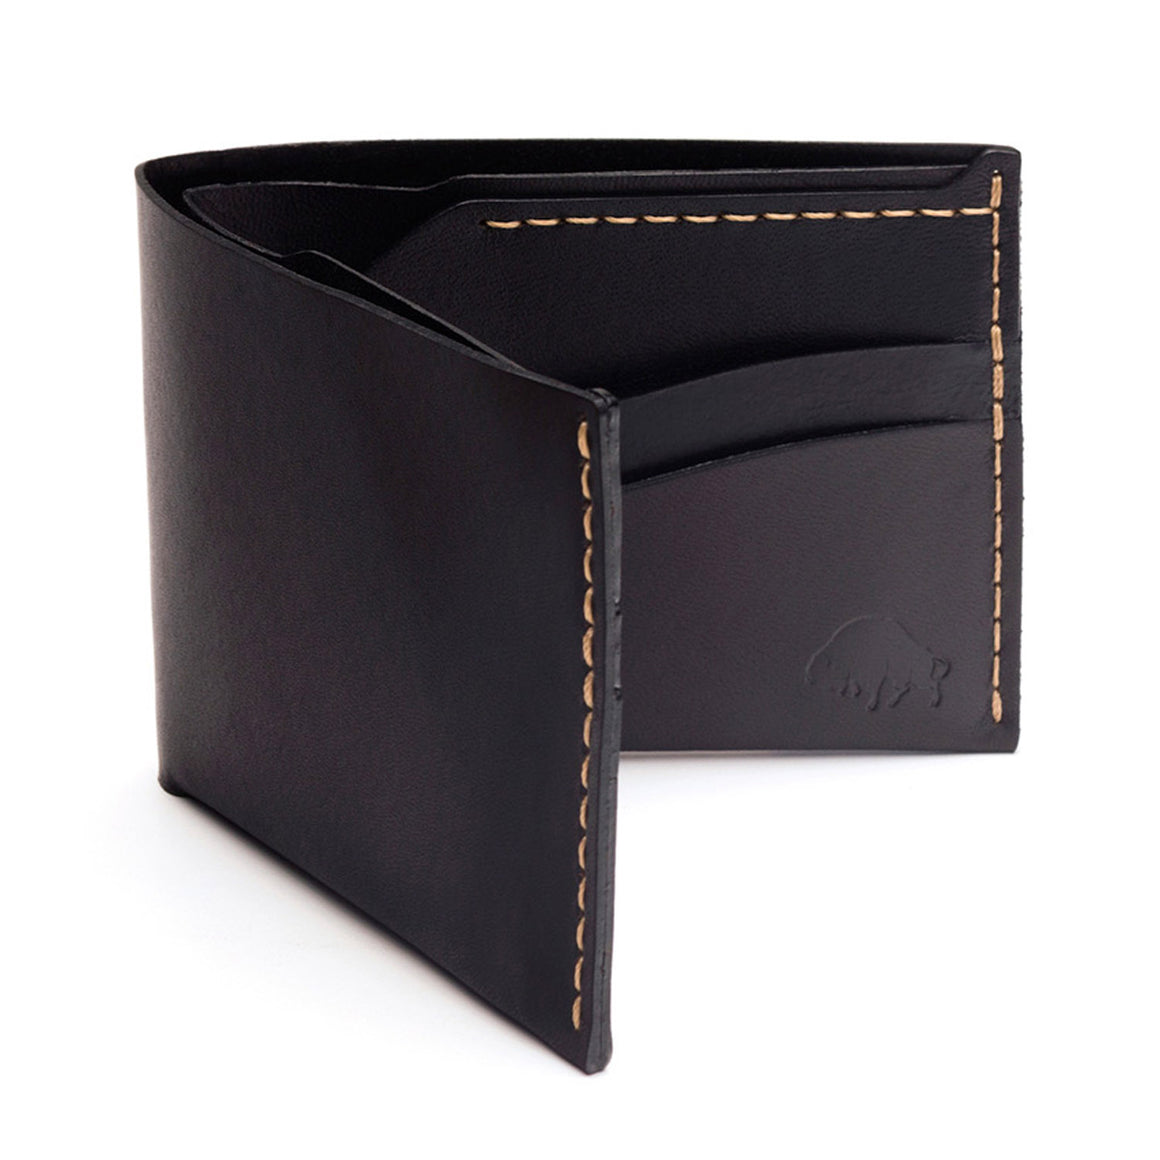 No. 6 Wallet - Black w/ Top Stitch